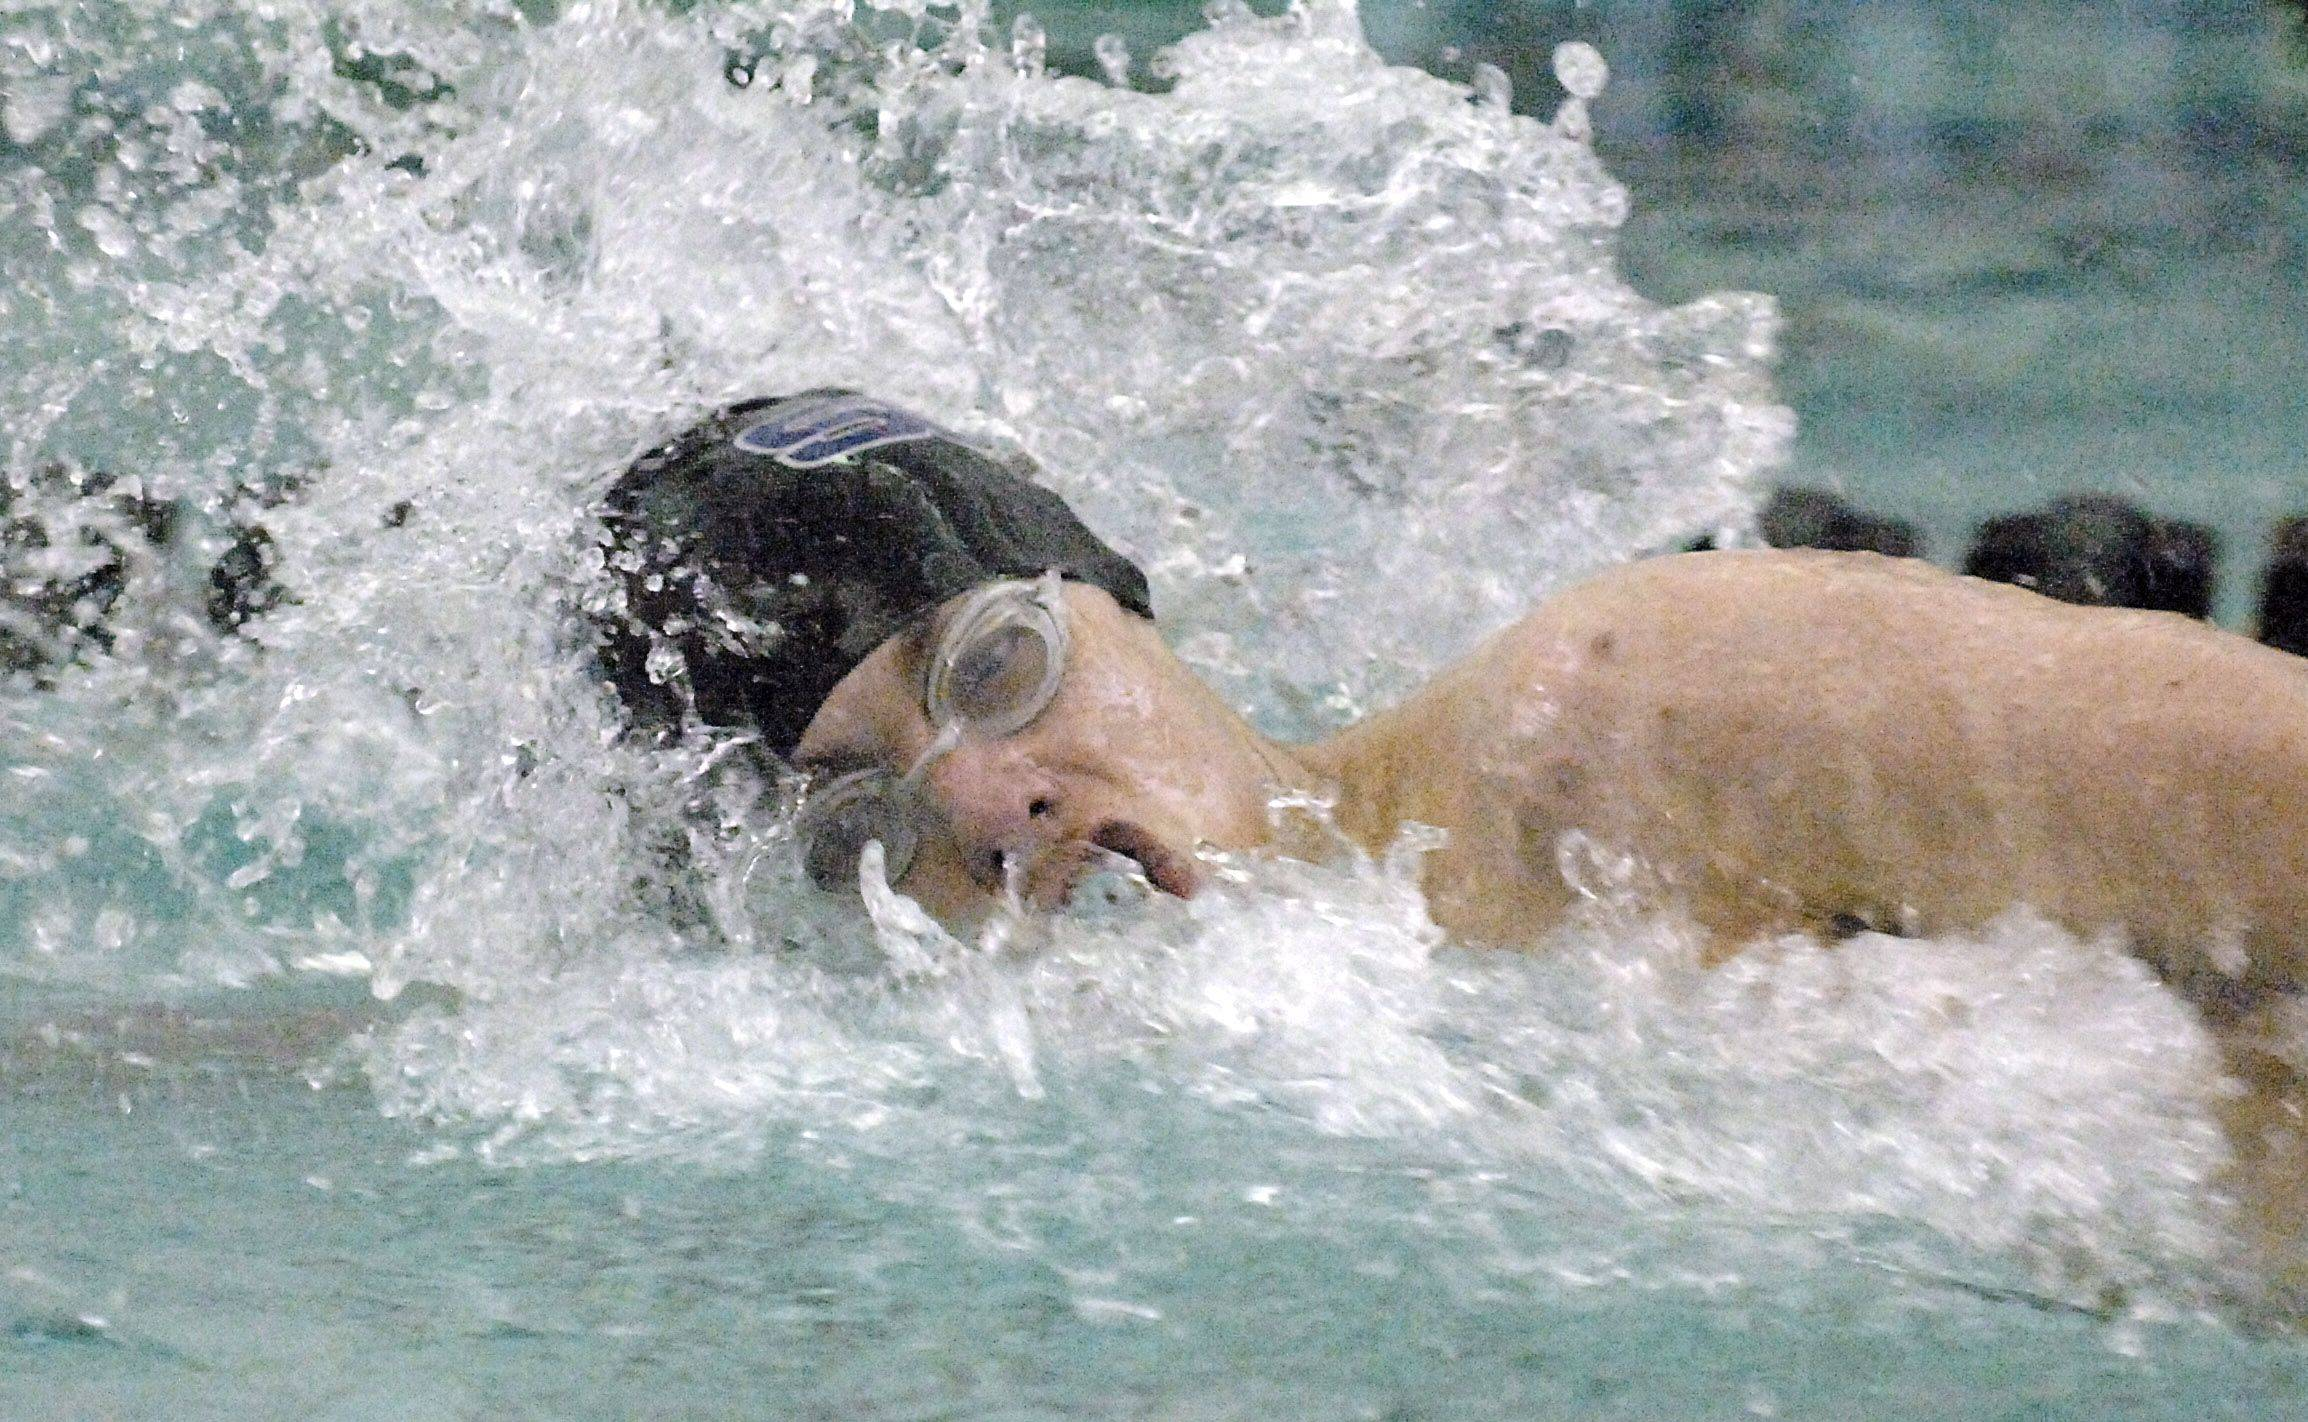 St. Charles North�s Chris Dieter swims the 200 free at last week�s St. Charles North sectional.